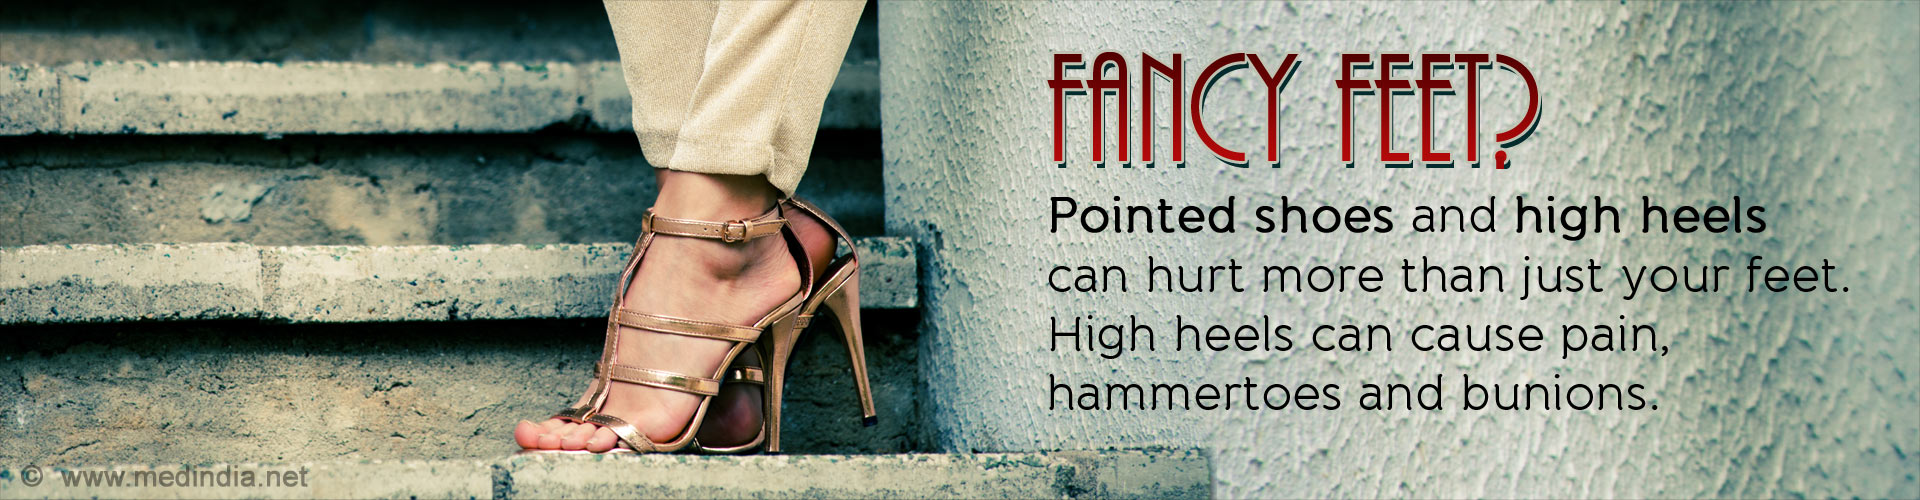 Fancy Feet? Pointed Shoes and High Heels can Hurt More Than just Your Feet. High heels can cause pain, hammertoes and bunions.